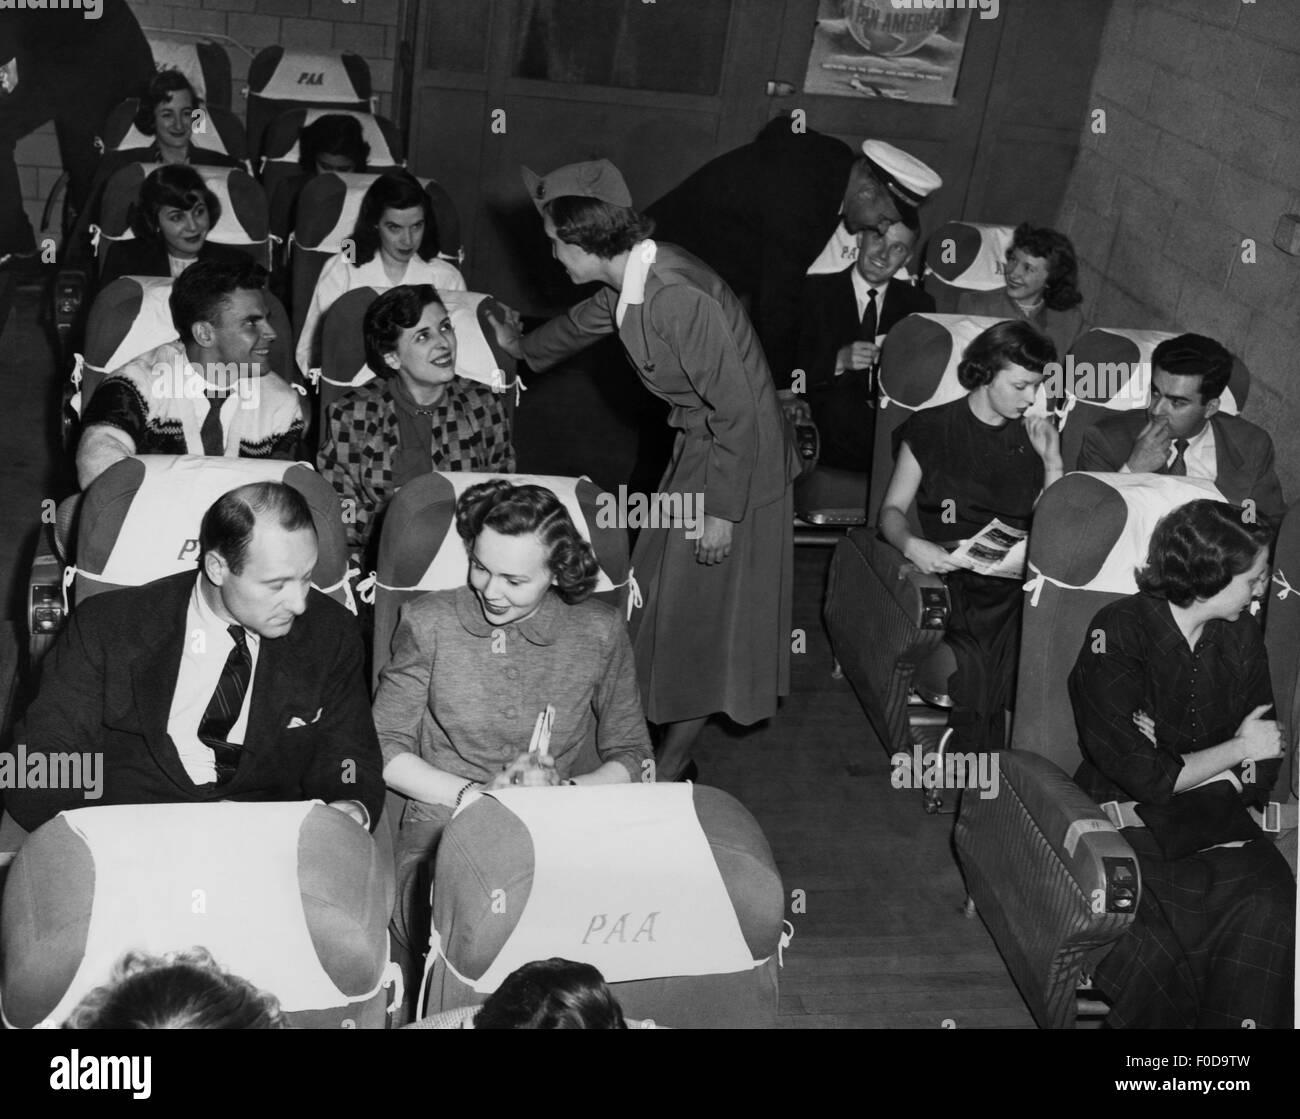 transport / transportation, aviation, staff, stewardess, stewardess of the PanAm during the training in training - Stock Image